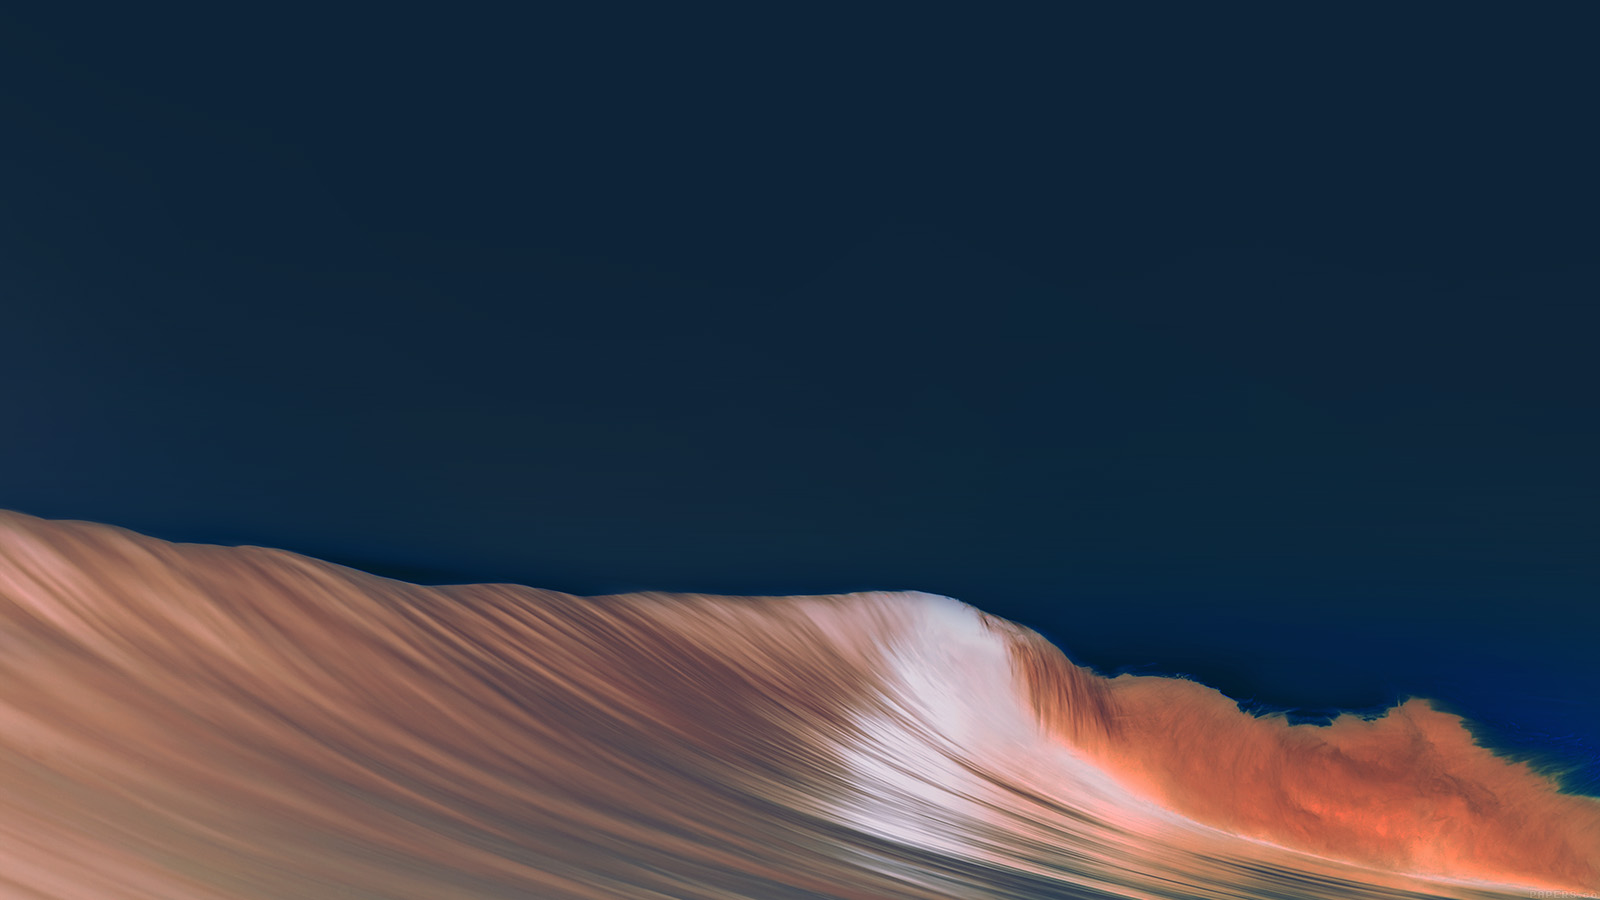 Ag49 Rolling Wave Art Dark Simple Minimal Wallpaper